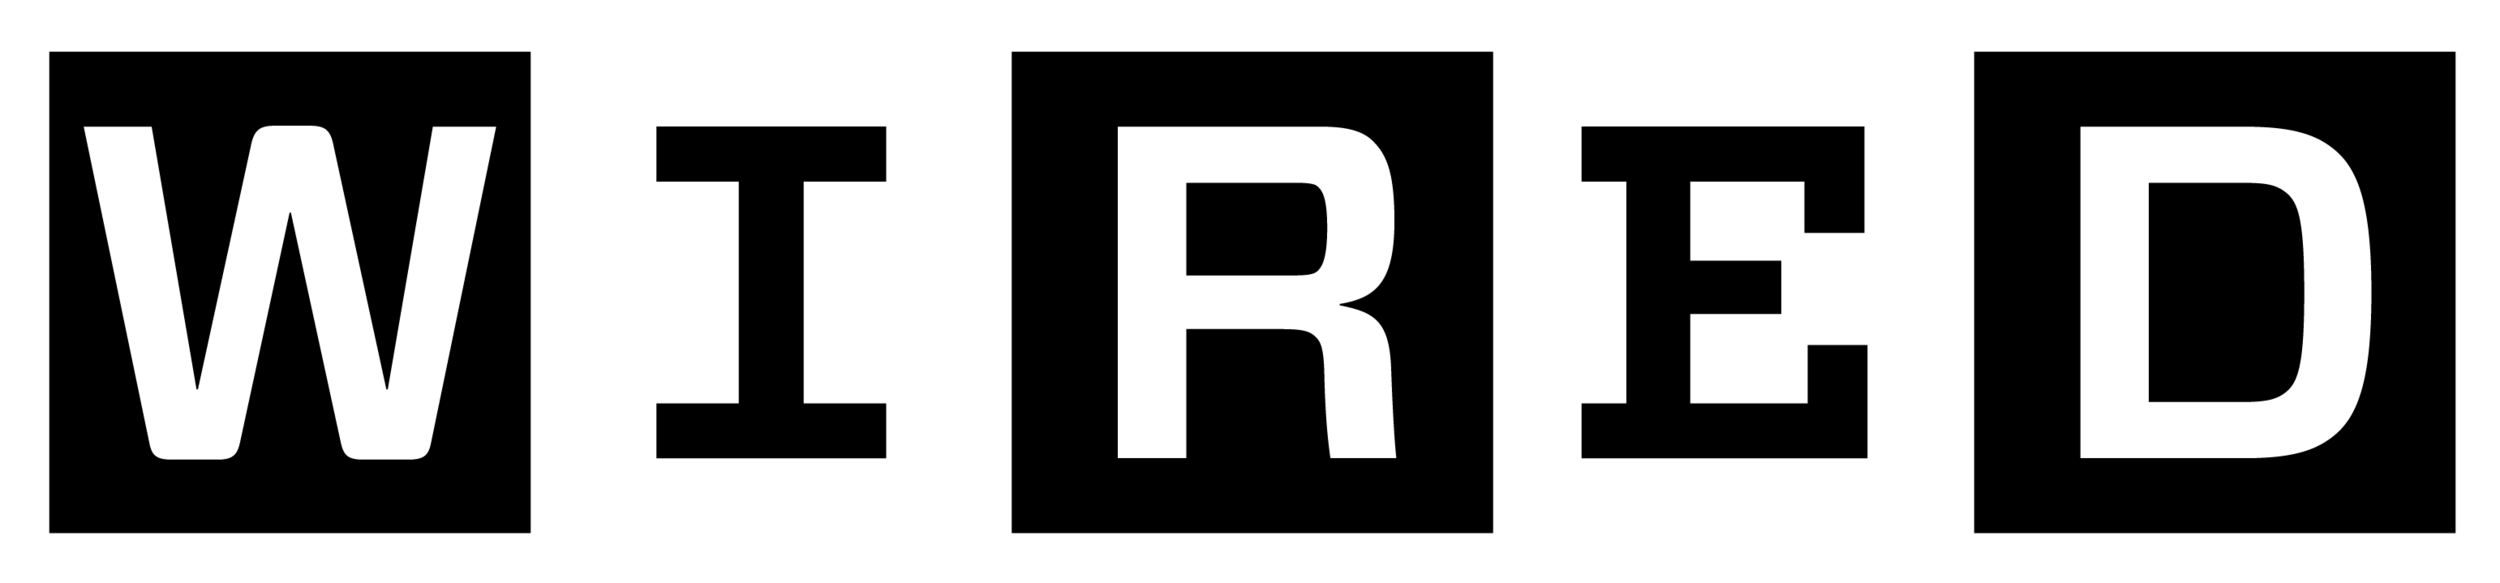 wired logo 2.png